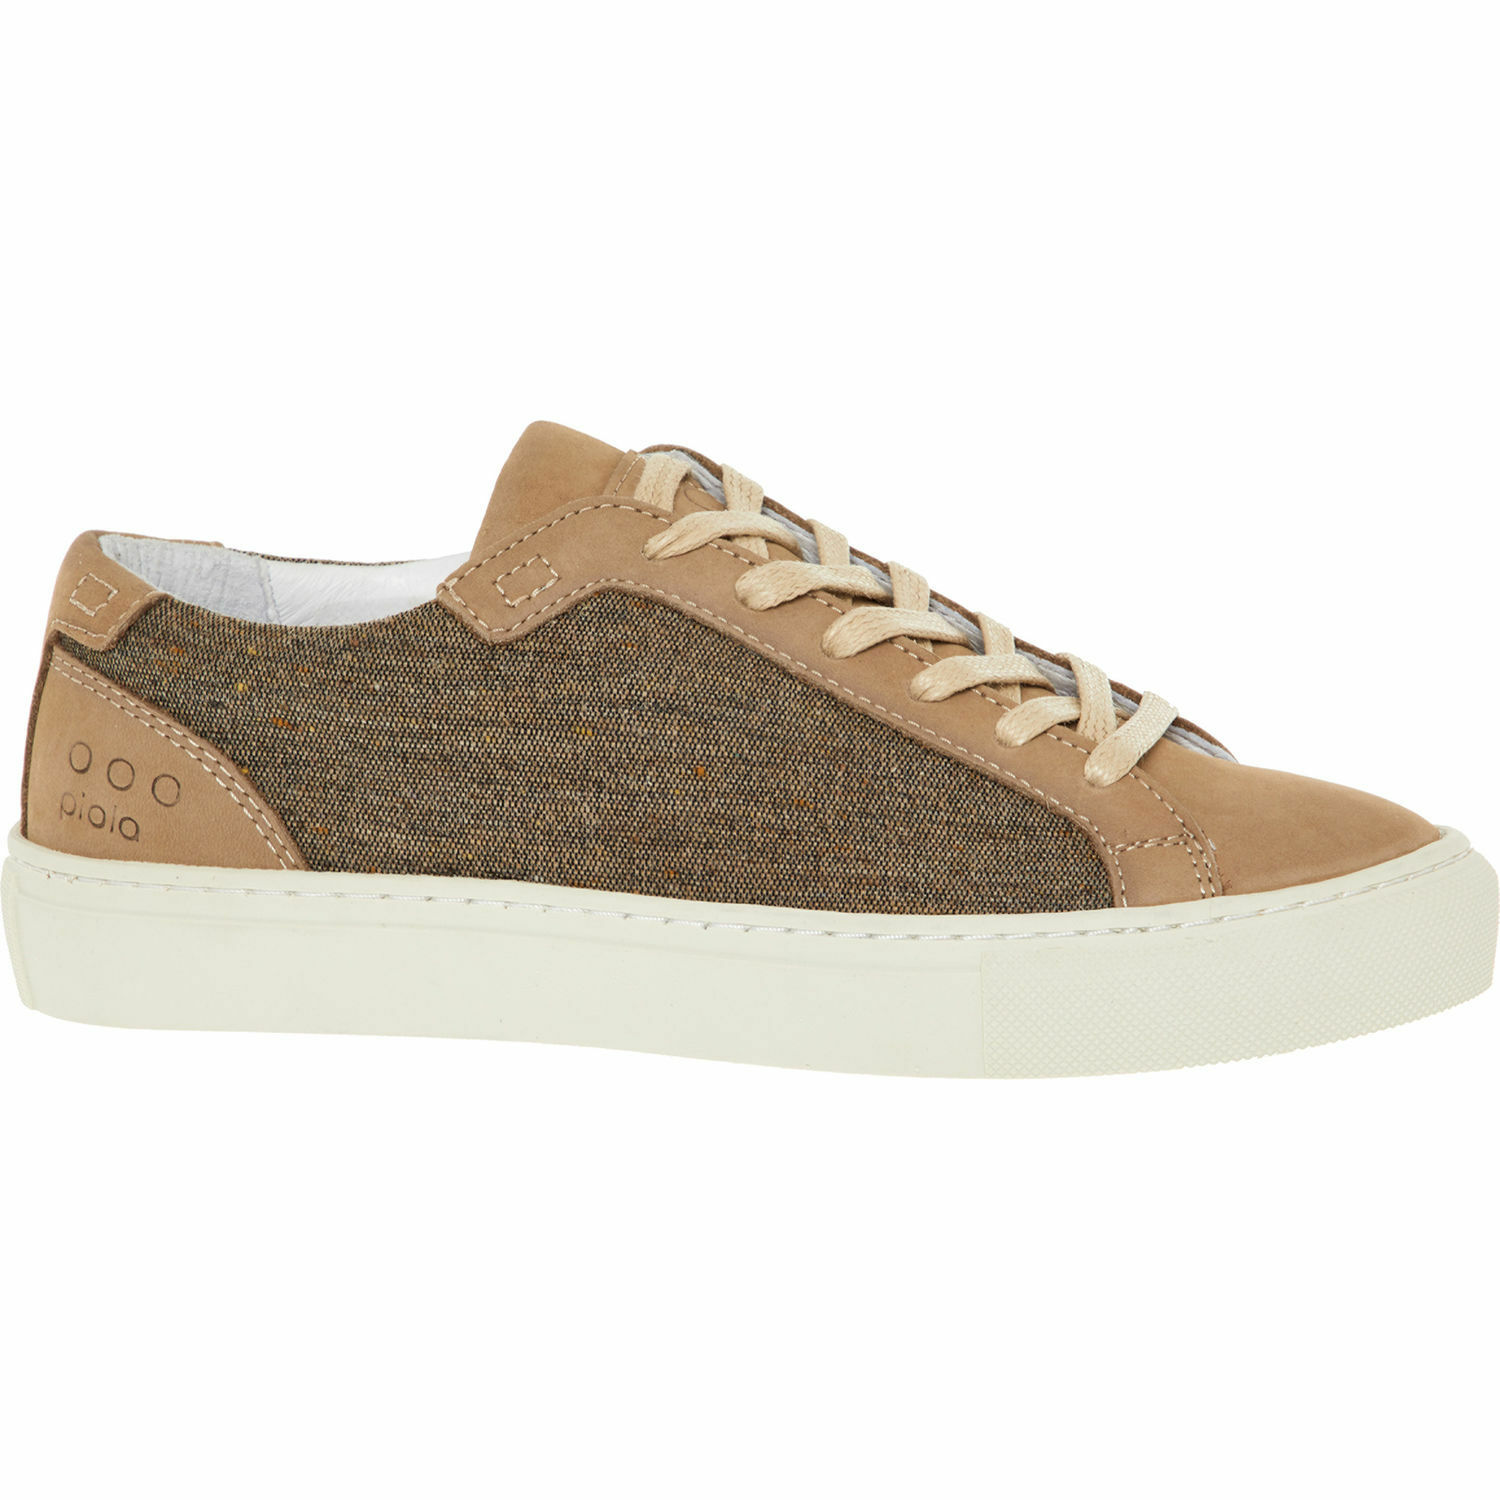 New PIOLA ICA Lady Beige Brown Felted Wool & Leather Trainers shoes Sneakers UK5